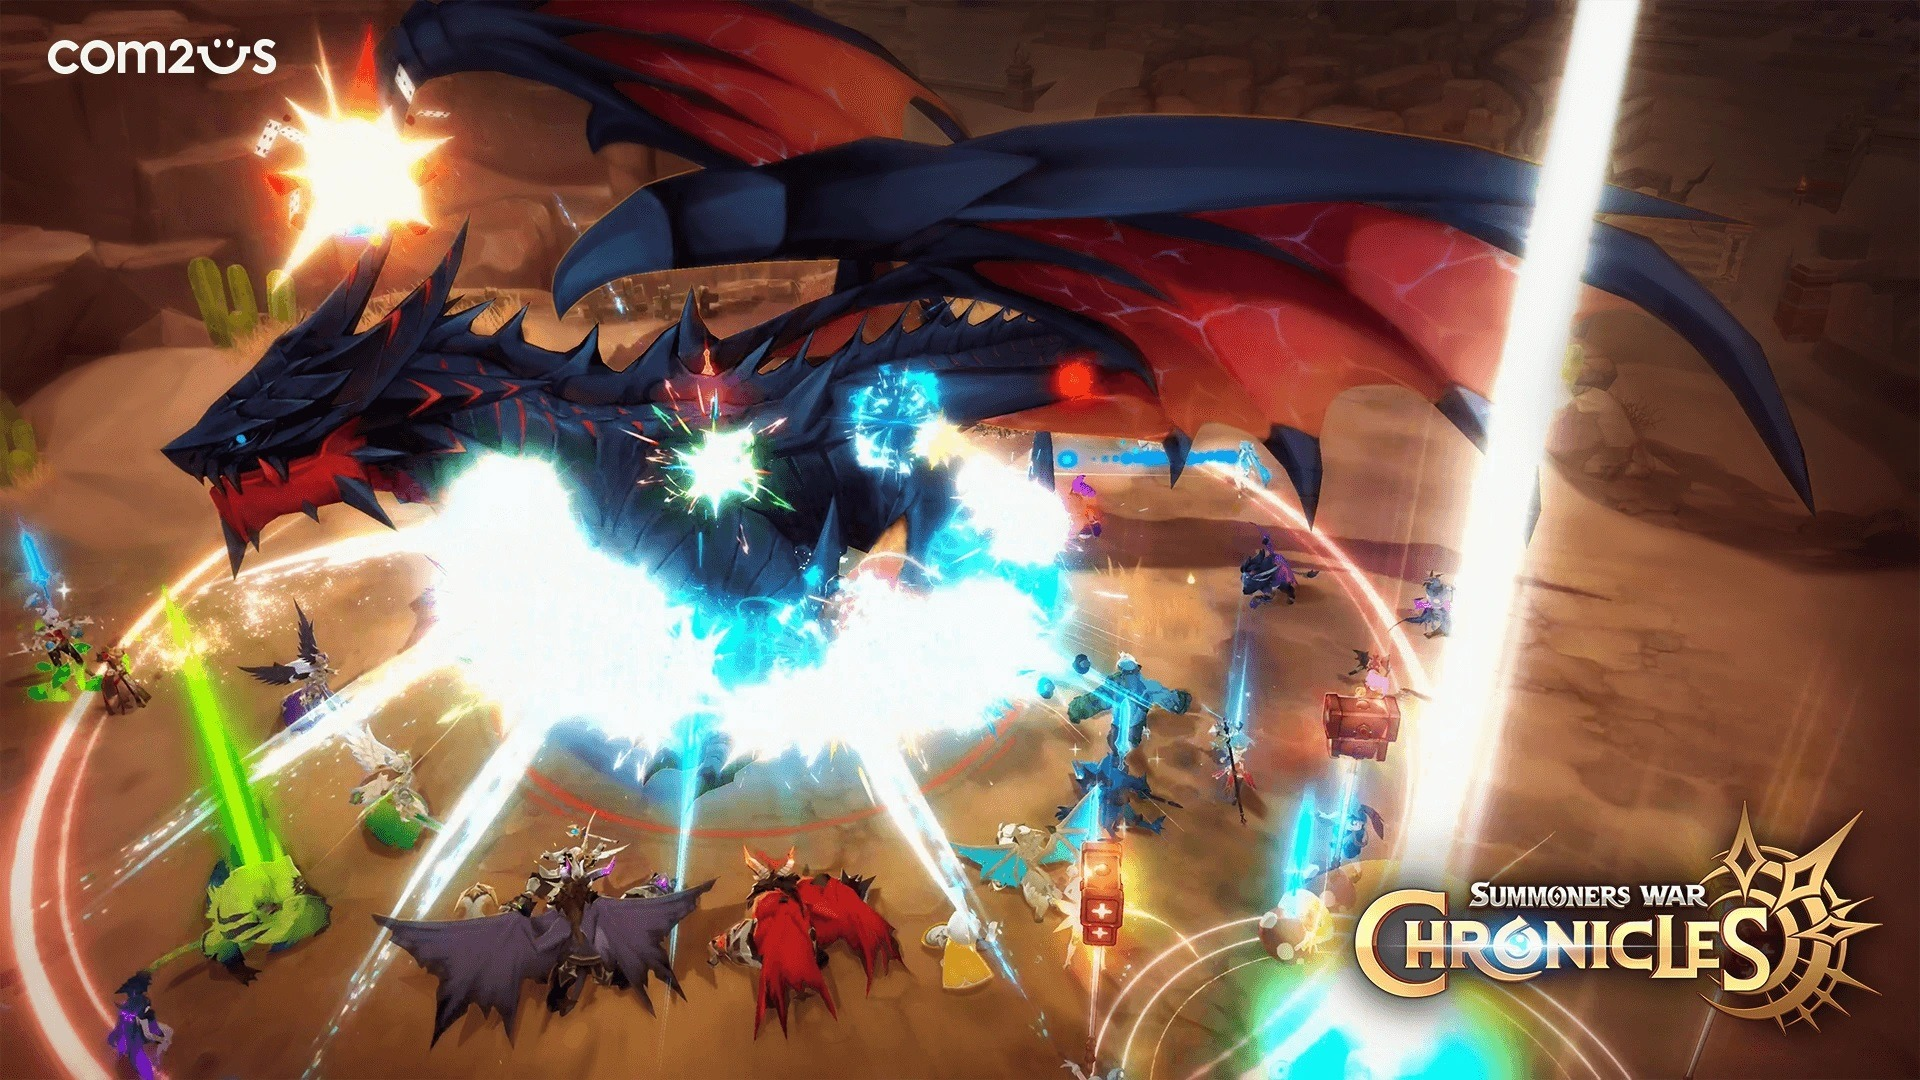 Summoners War: Chronicles to Add MMORPG Experience to Summoners War Universe